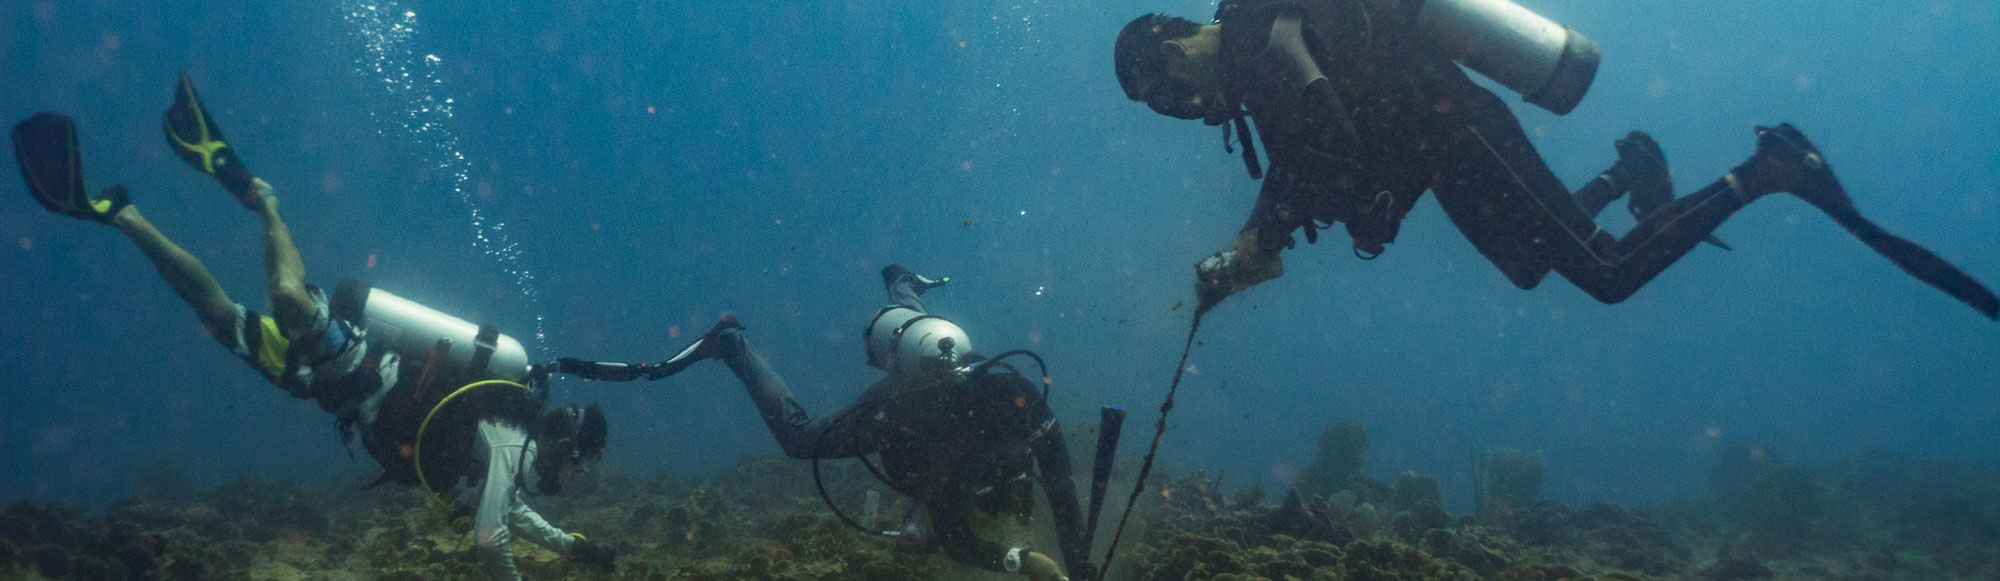 Marine biologist installing a flow meter to study the currents underwater.